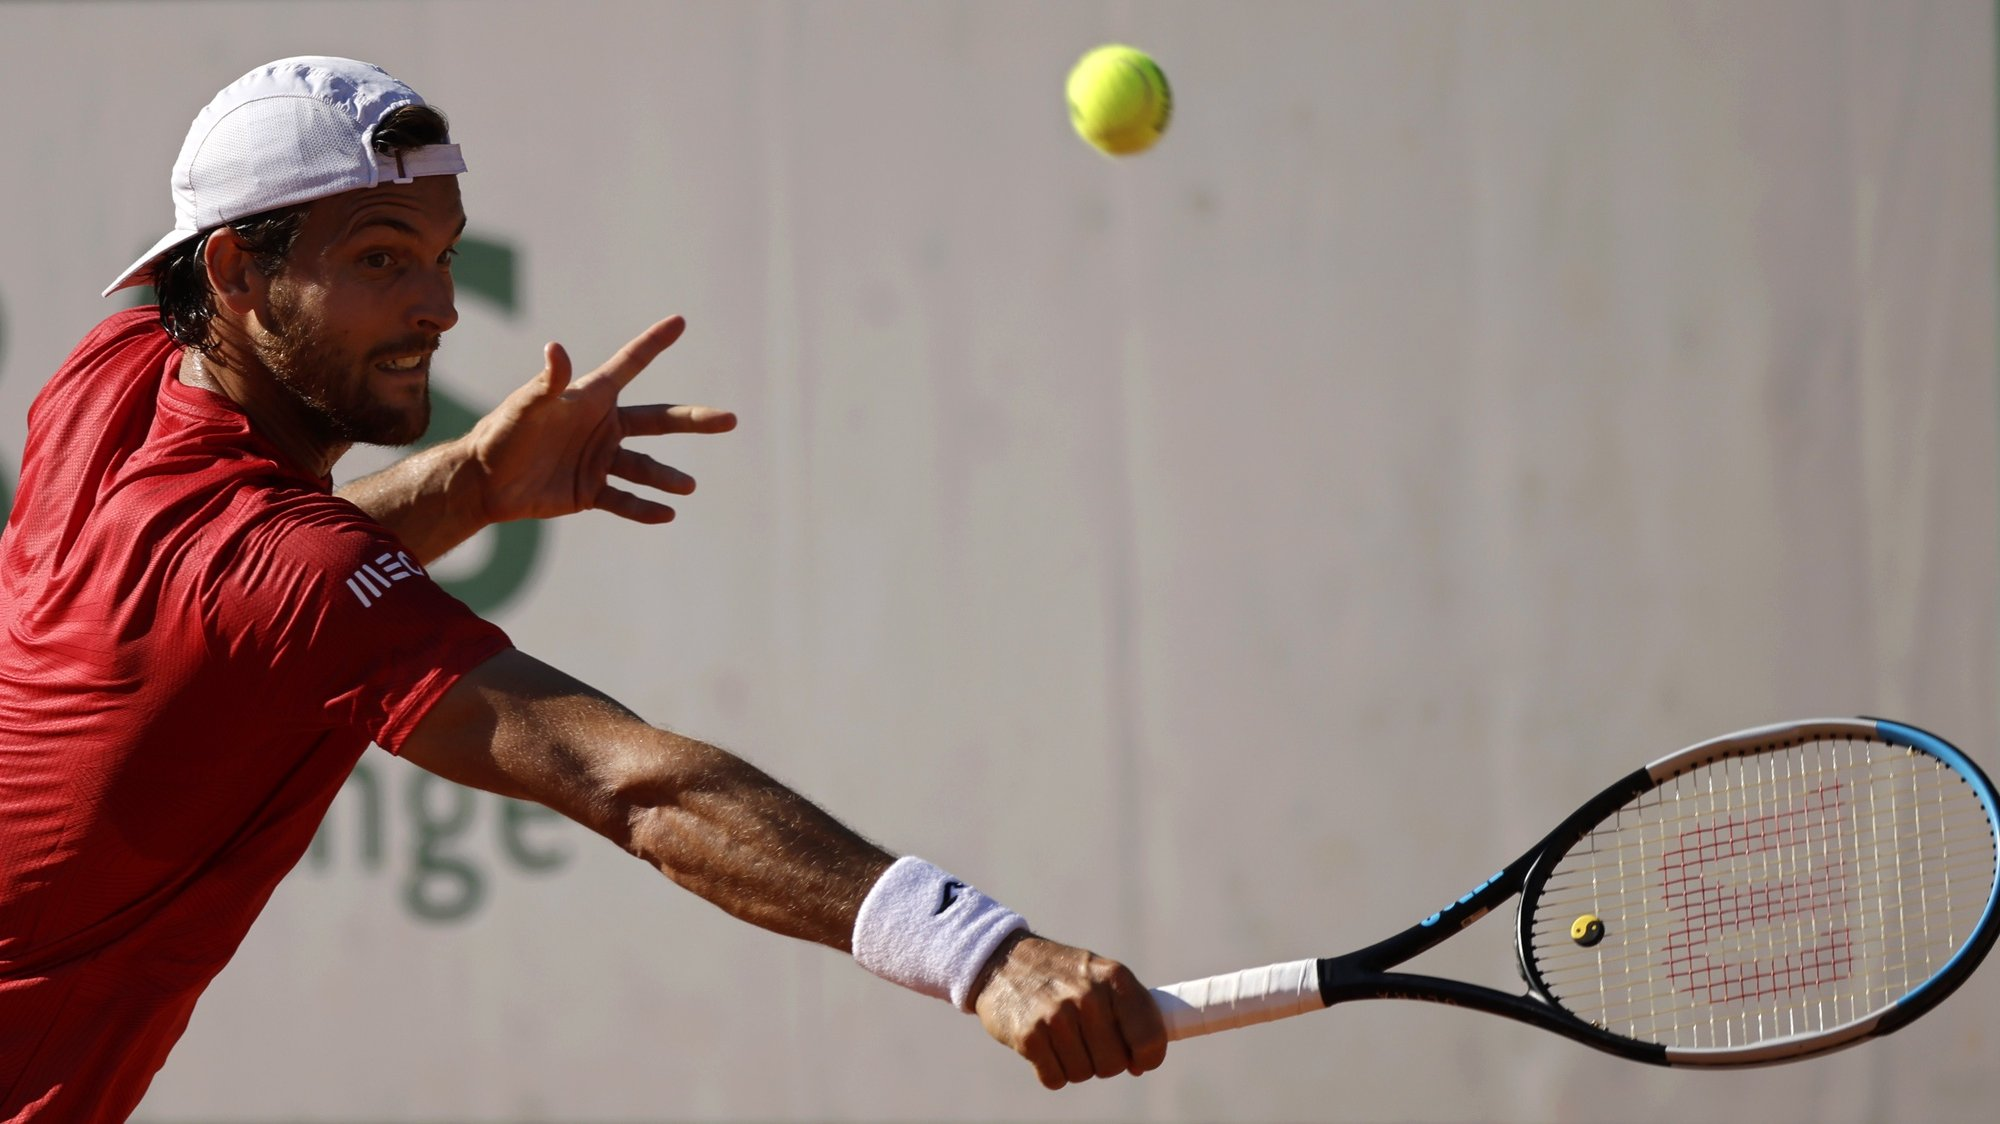 epa09239466 Joao Sousa of Portugal in action against Taylor Fritz of the USA during their first round match at the French Open tennis tournament at Roland Garros in Paris, France, 31 May 2021.  EPA/YOAN VALAT